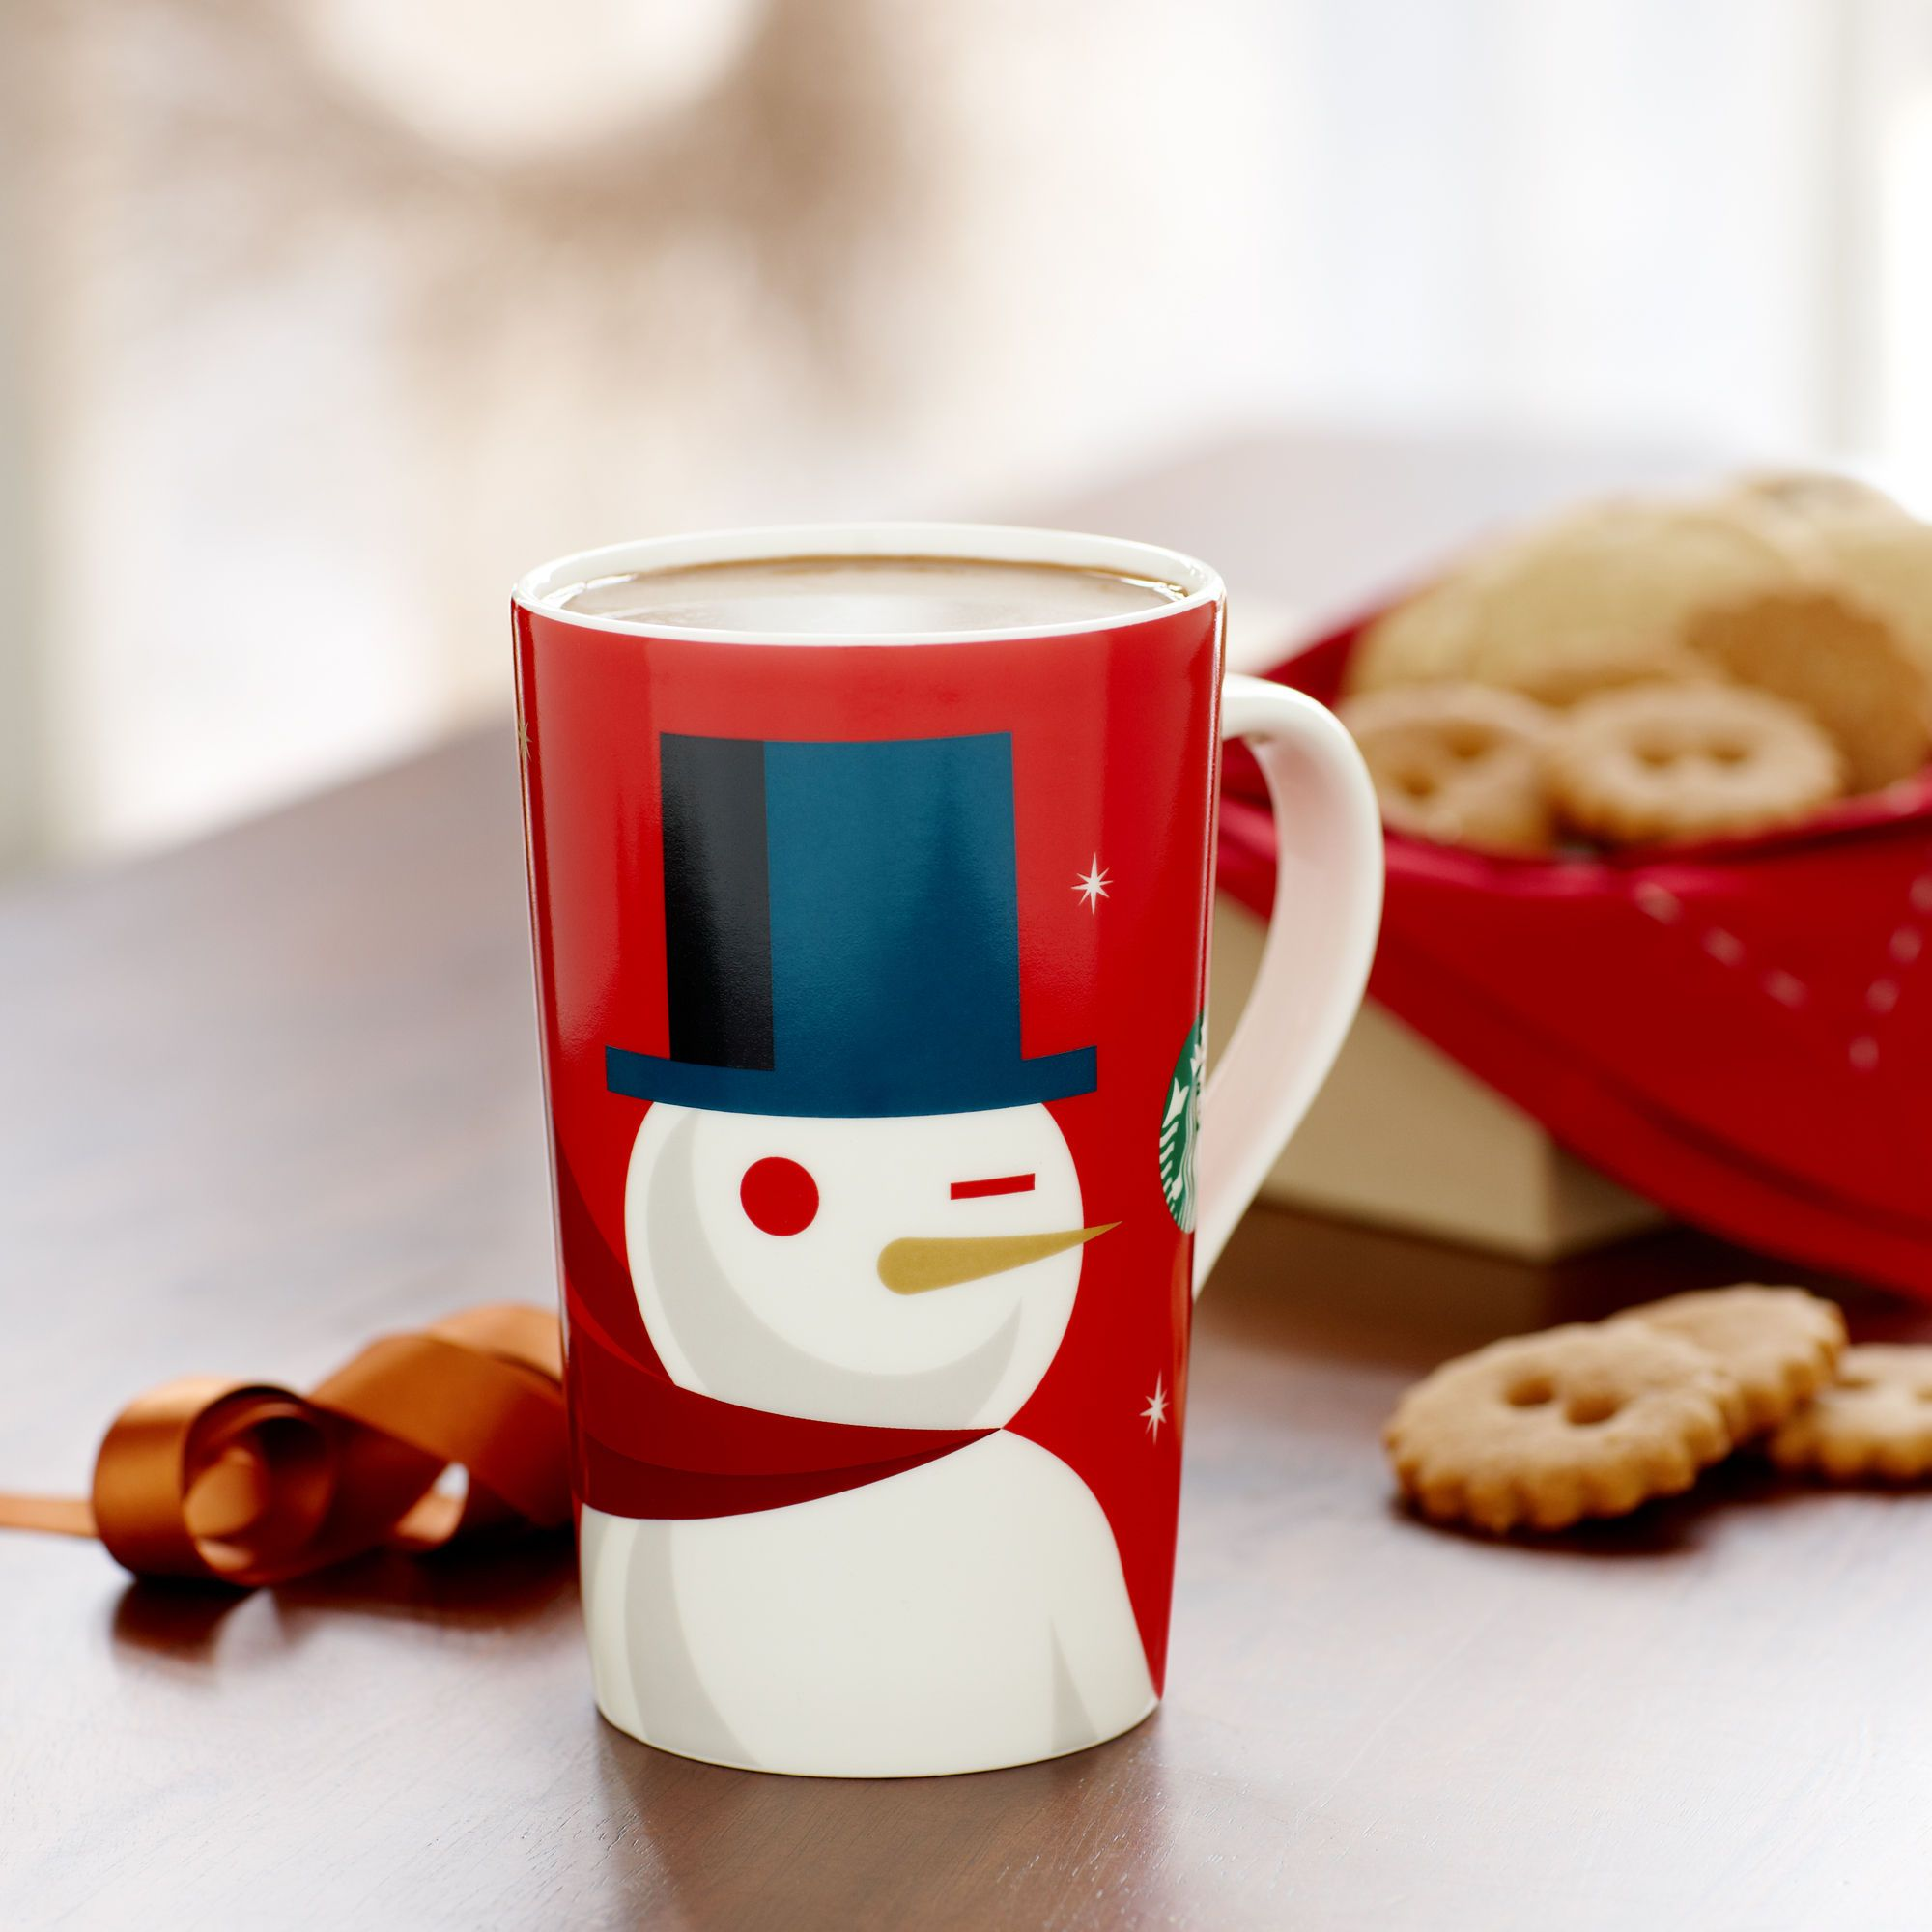 Starbucks® Holiday Red Cup Mug Snowman, 16 fl oz